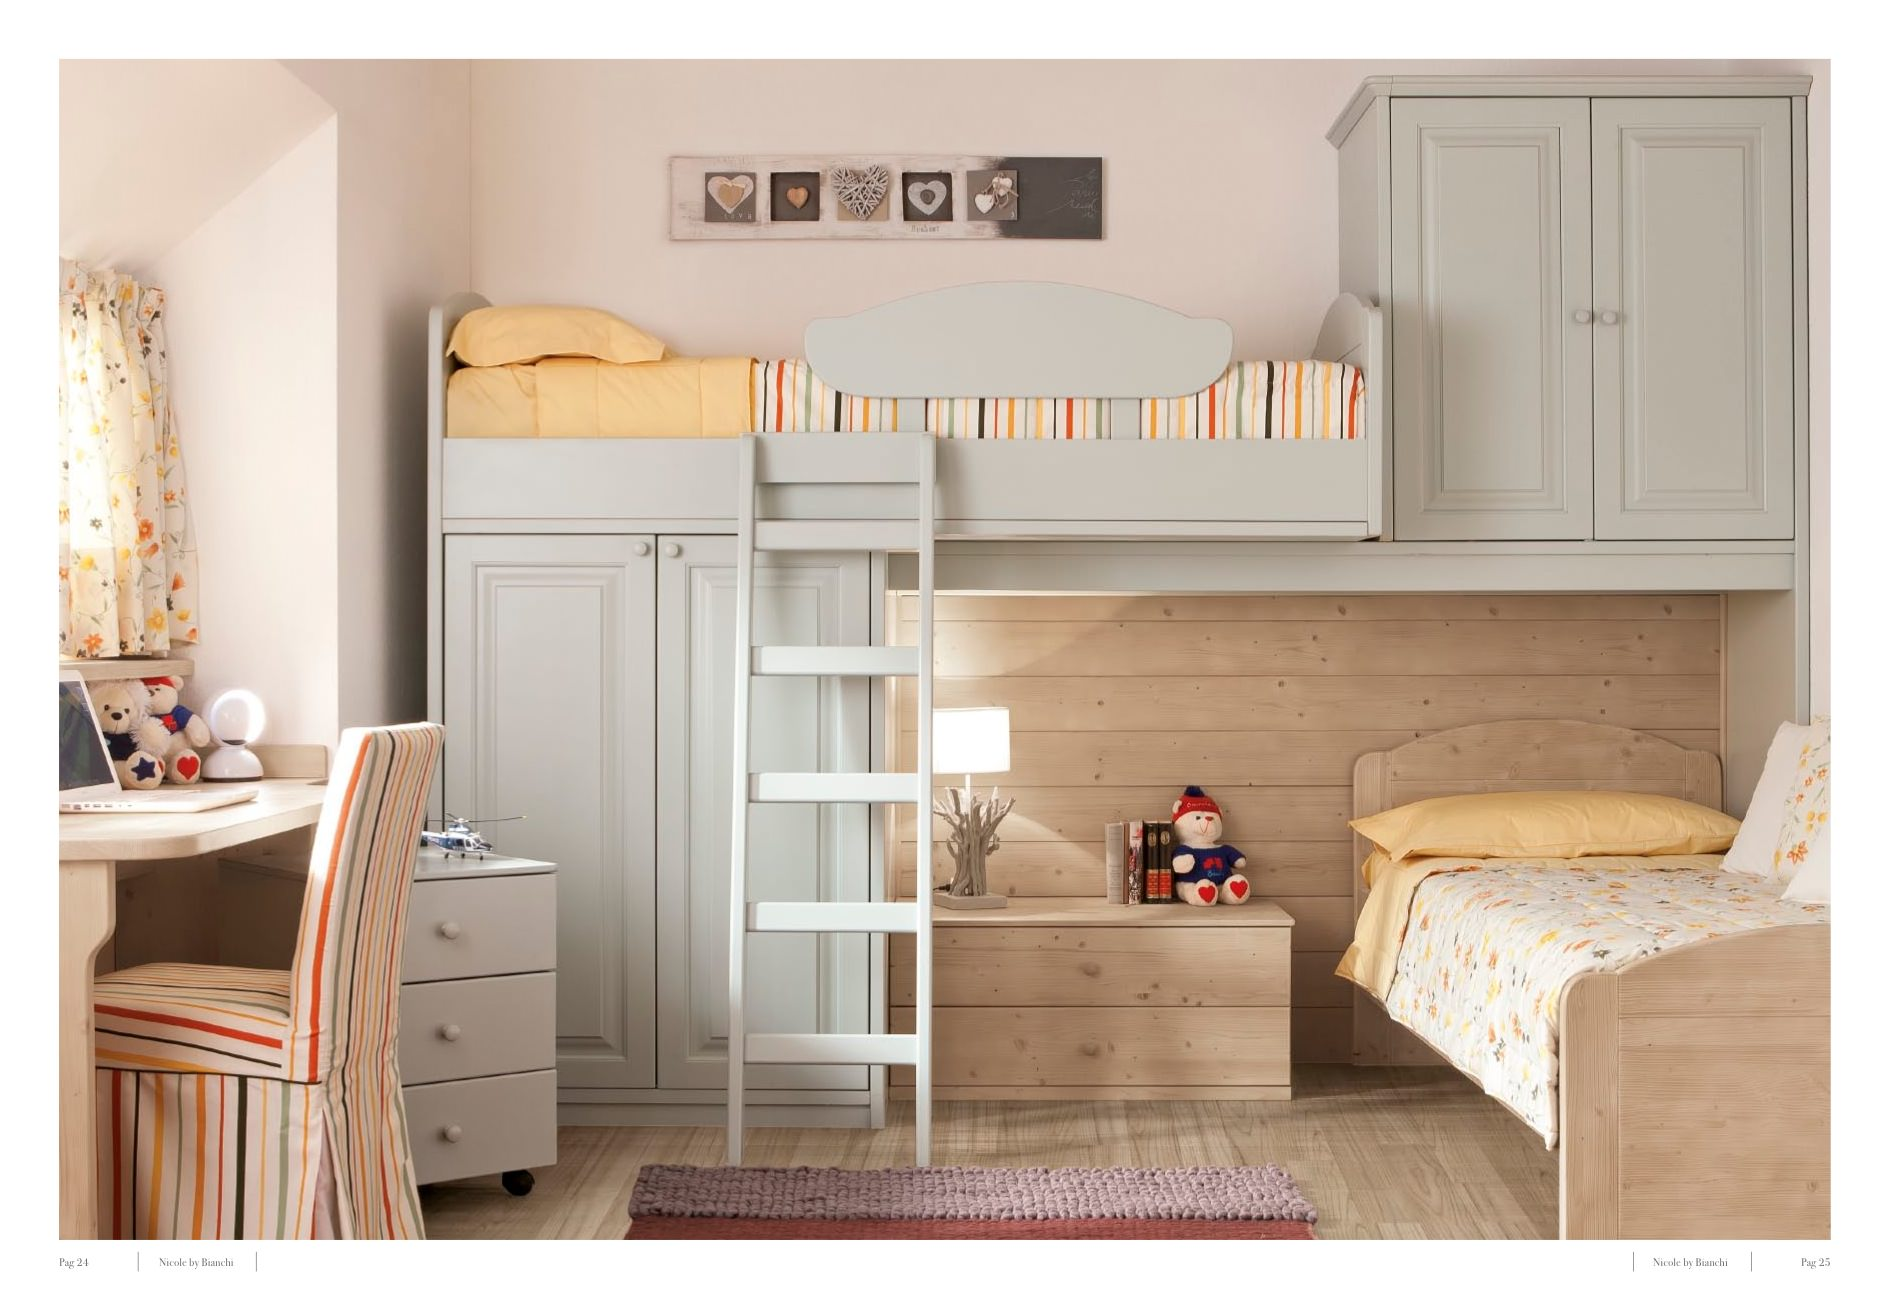 Camere country chic l 39 azienda bianchi presenta la - Camera da letto country chic ...